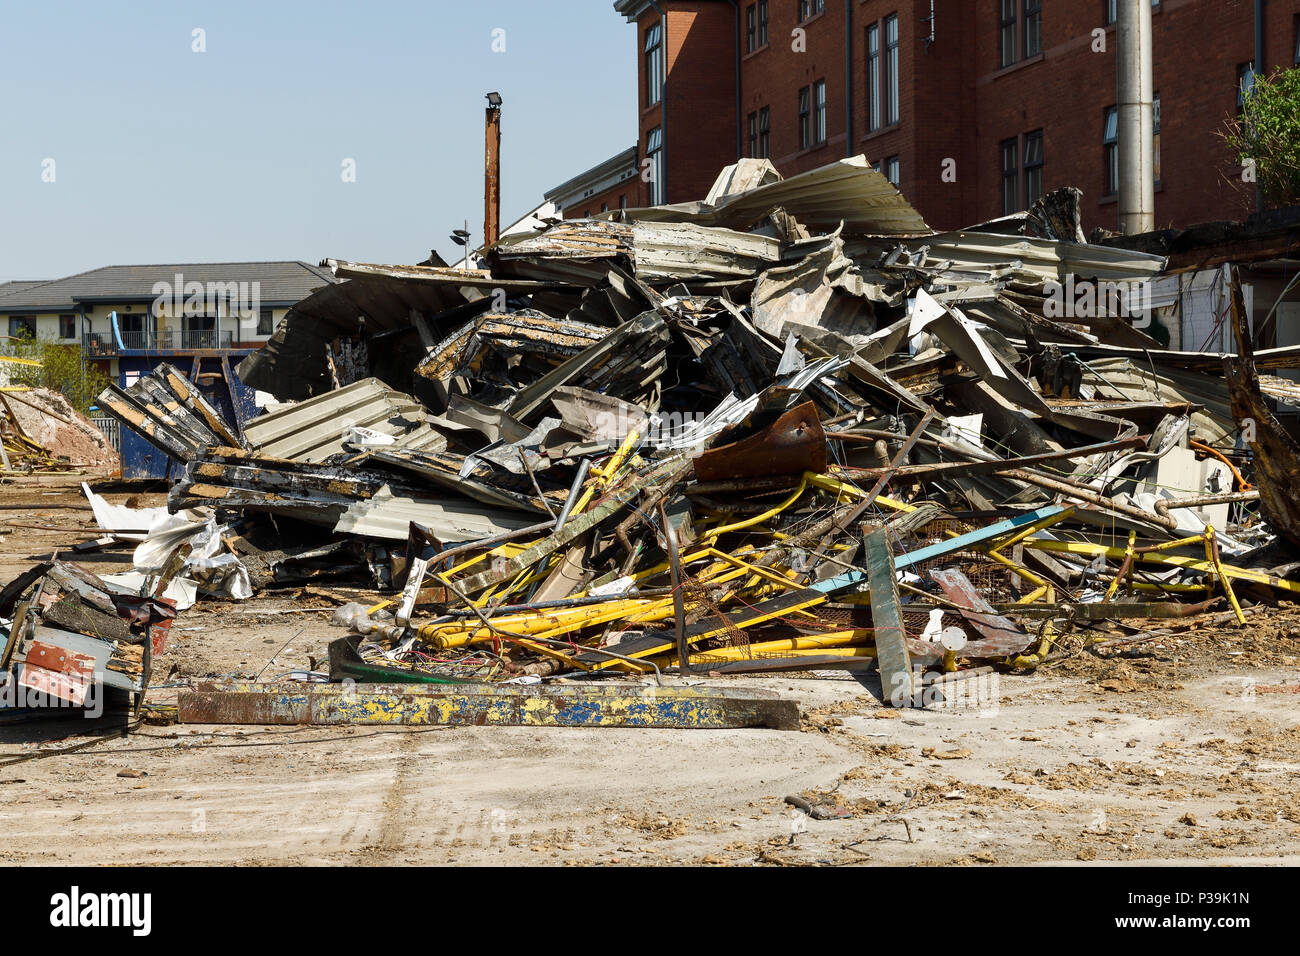 A large pile of scrap metal on a UK demolition site - Stock Image